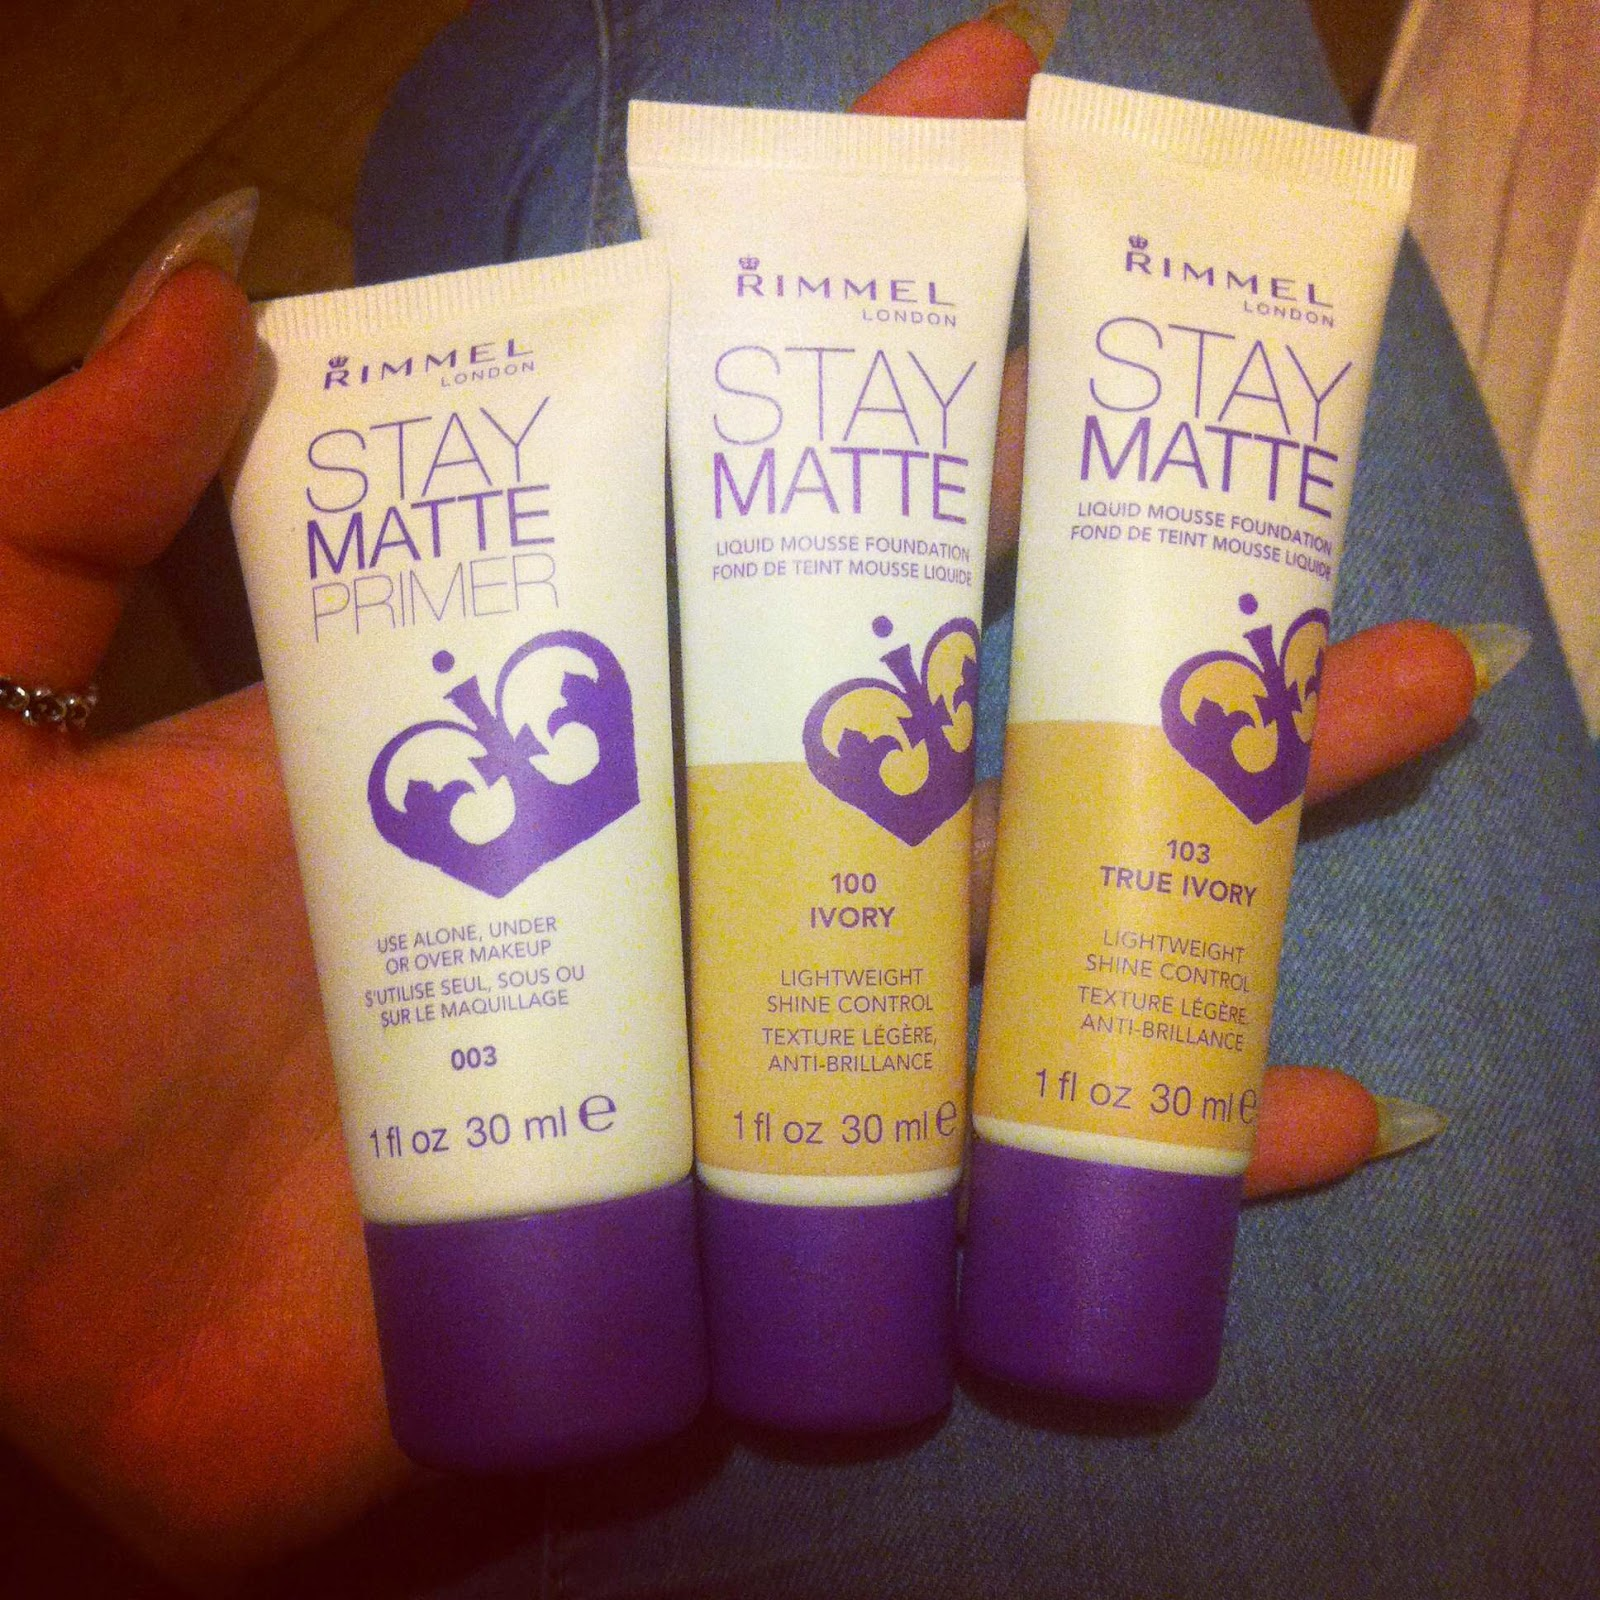 Makeupalley Rimmel Stay Matte Primer Saubhaya Makeup Foundation It Just Goes To Show You Don T Have Spend A Fortune On Products Achieve Great